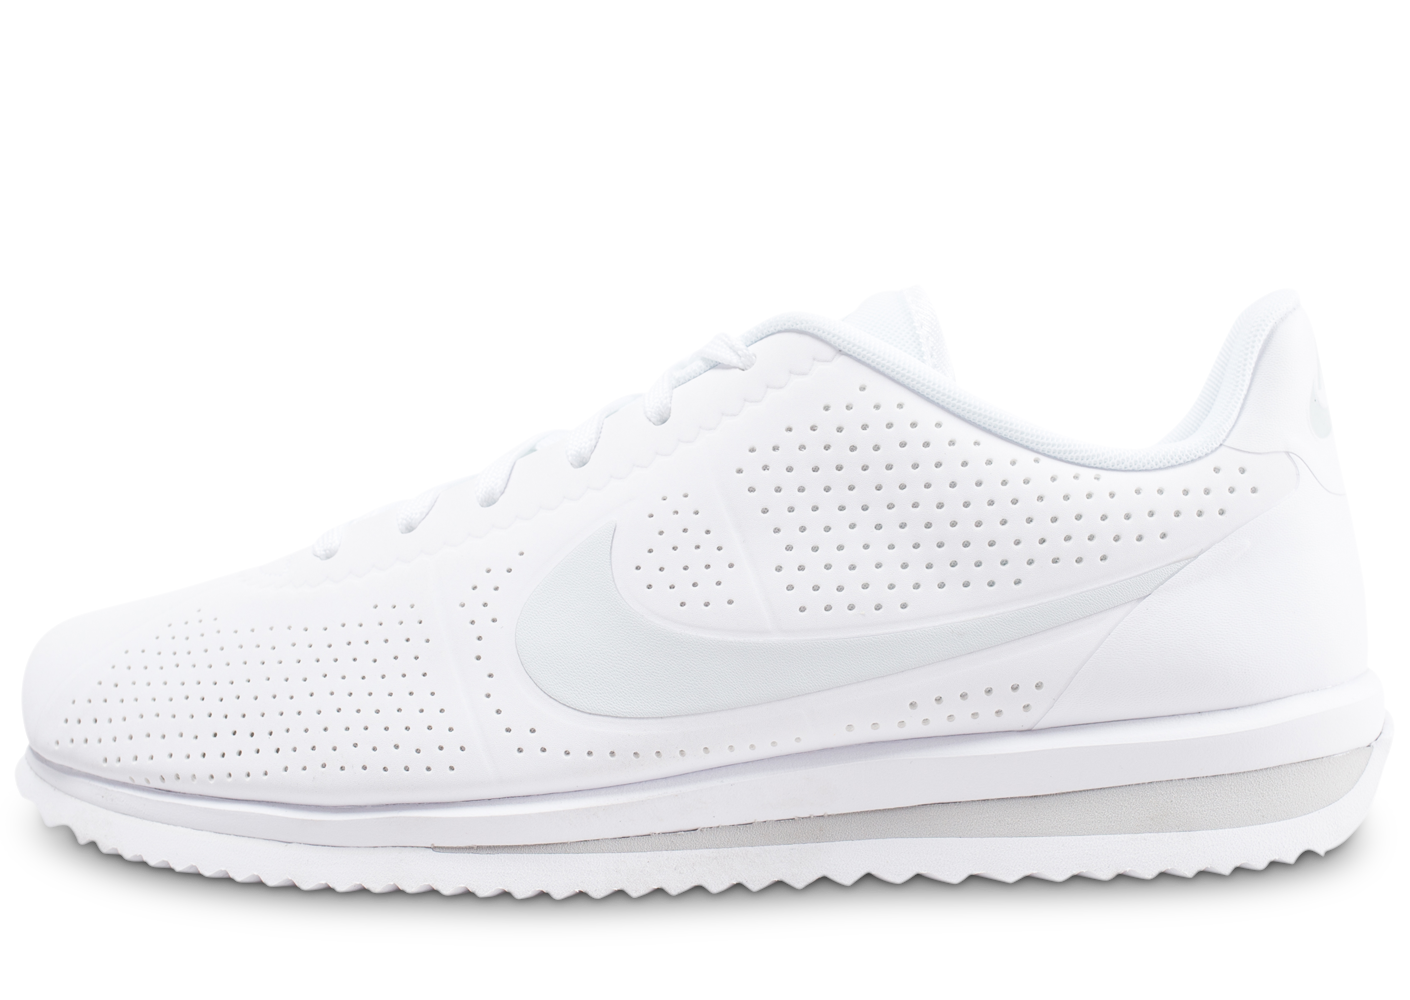 Nike Homme Cortez Ultra Moire Blanche Baskets